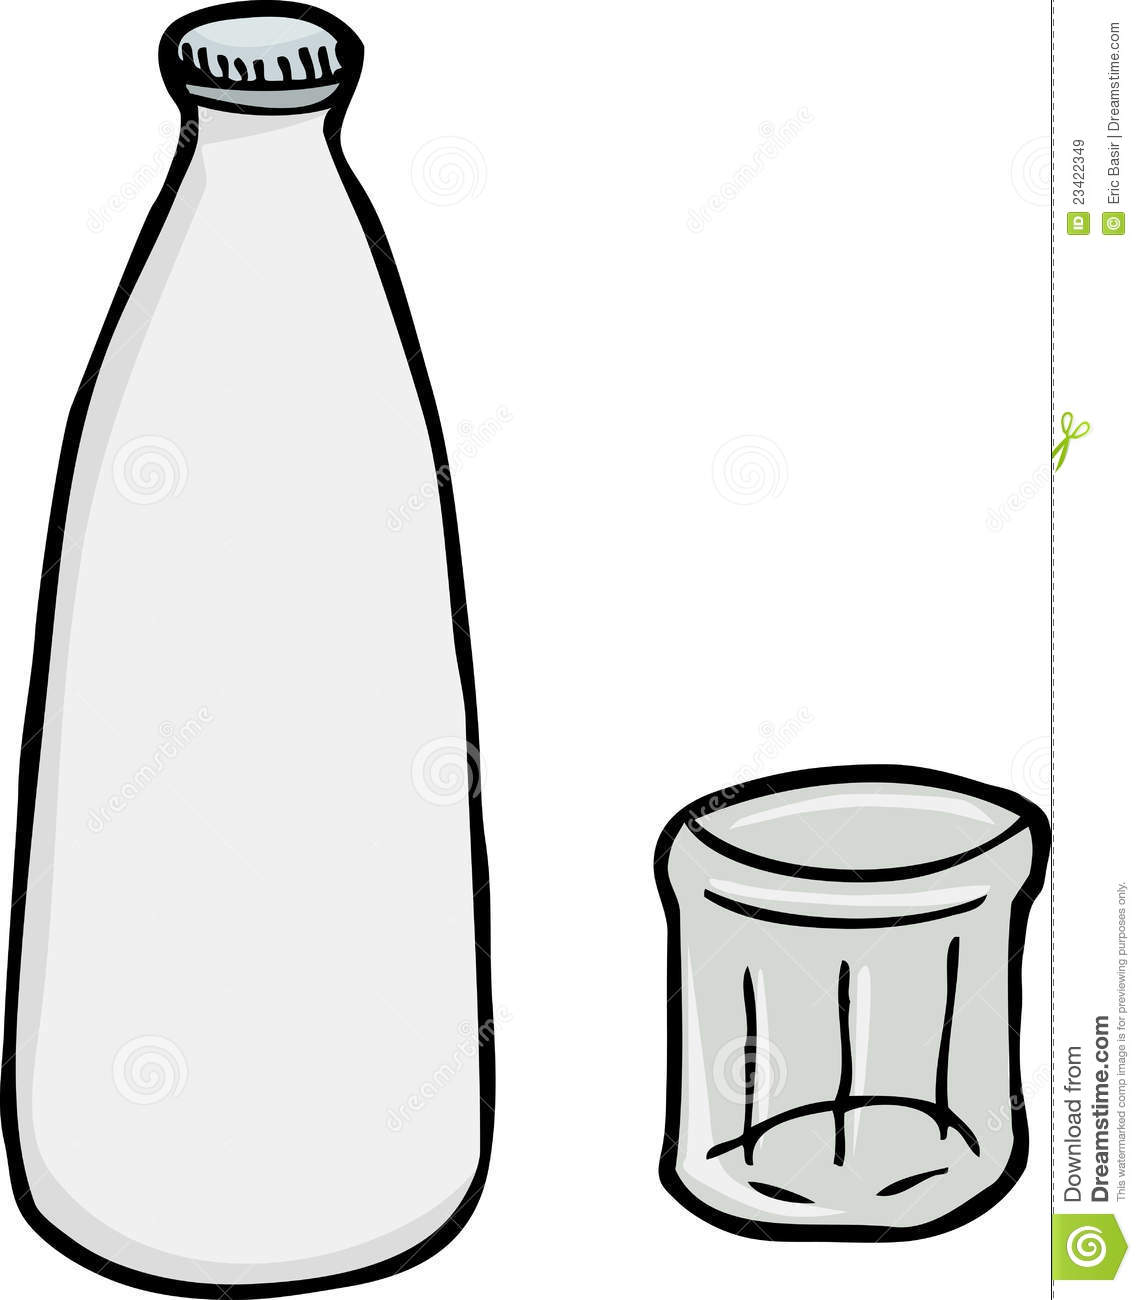 glass%20of%20milk%20clipart